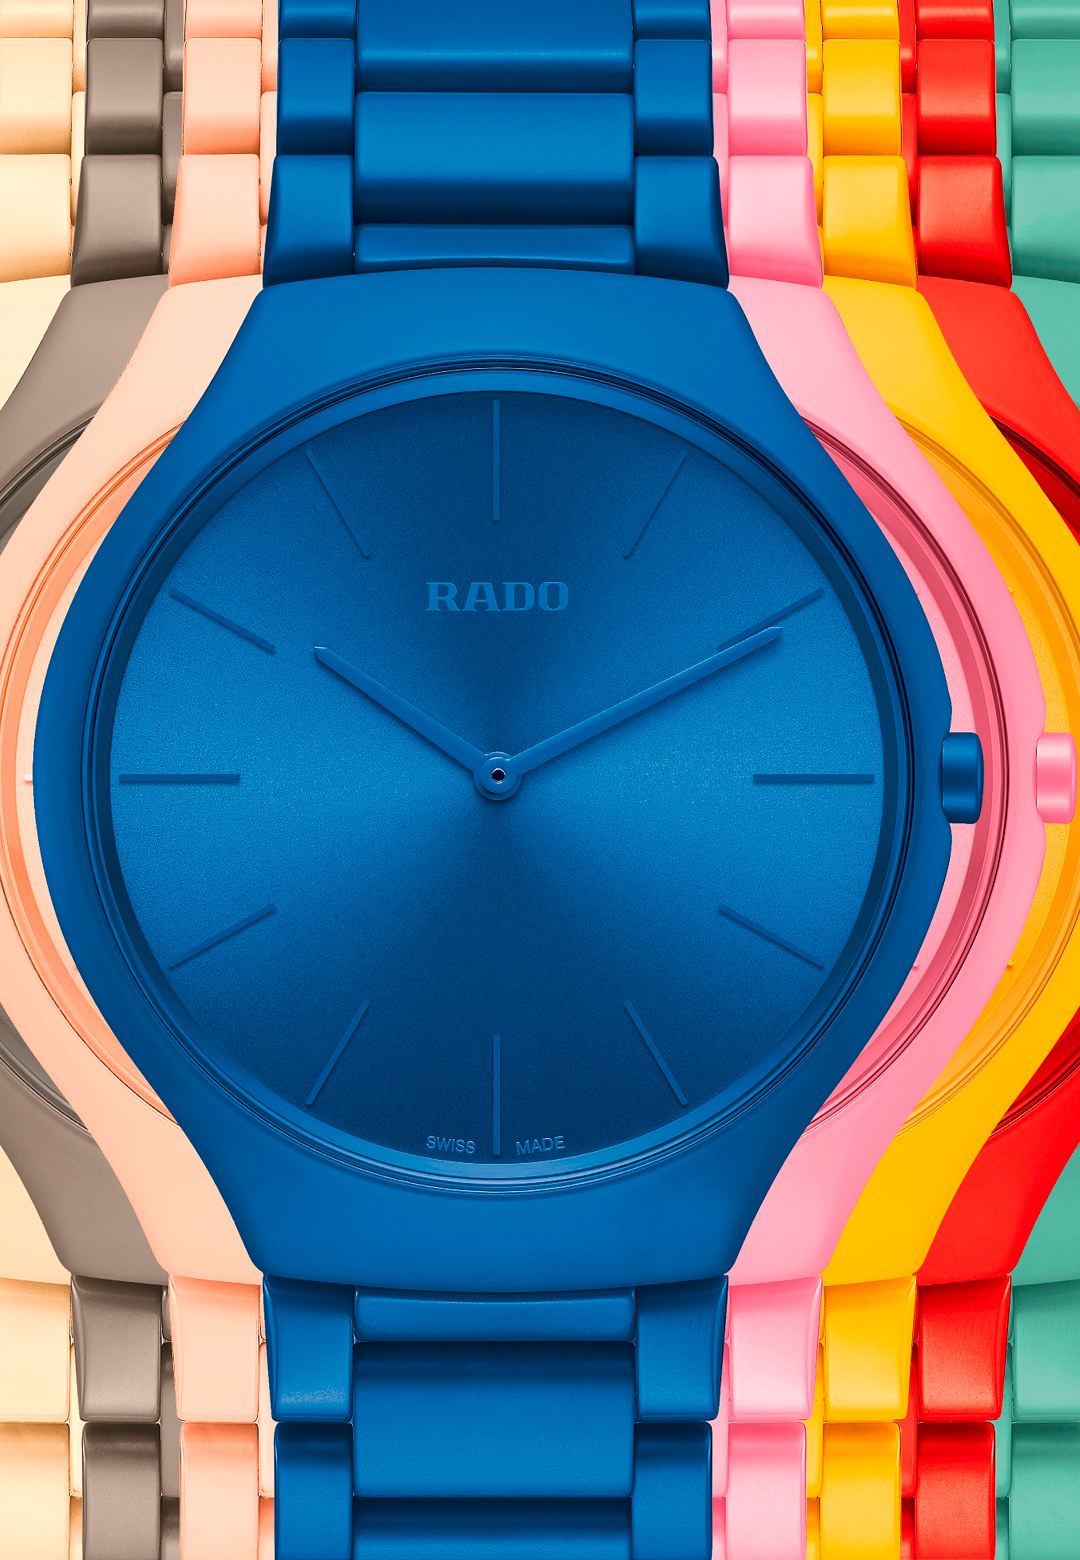 The new RADO True Thinline Les CouleursTM Le Corbusier collection inspired by Le Corbusier's architectural colours; the modernist visionary, Le Corbusier | RADO True Thinline Les CouleursTM Le Corbusier | STIR